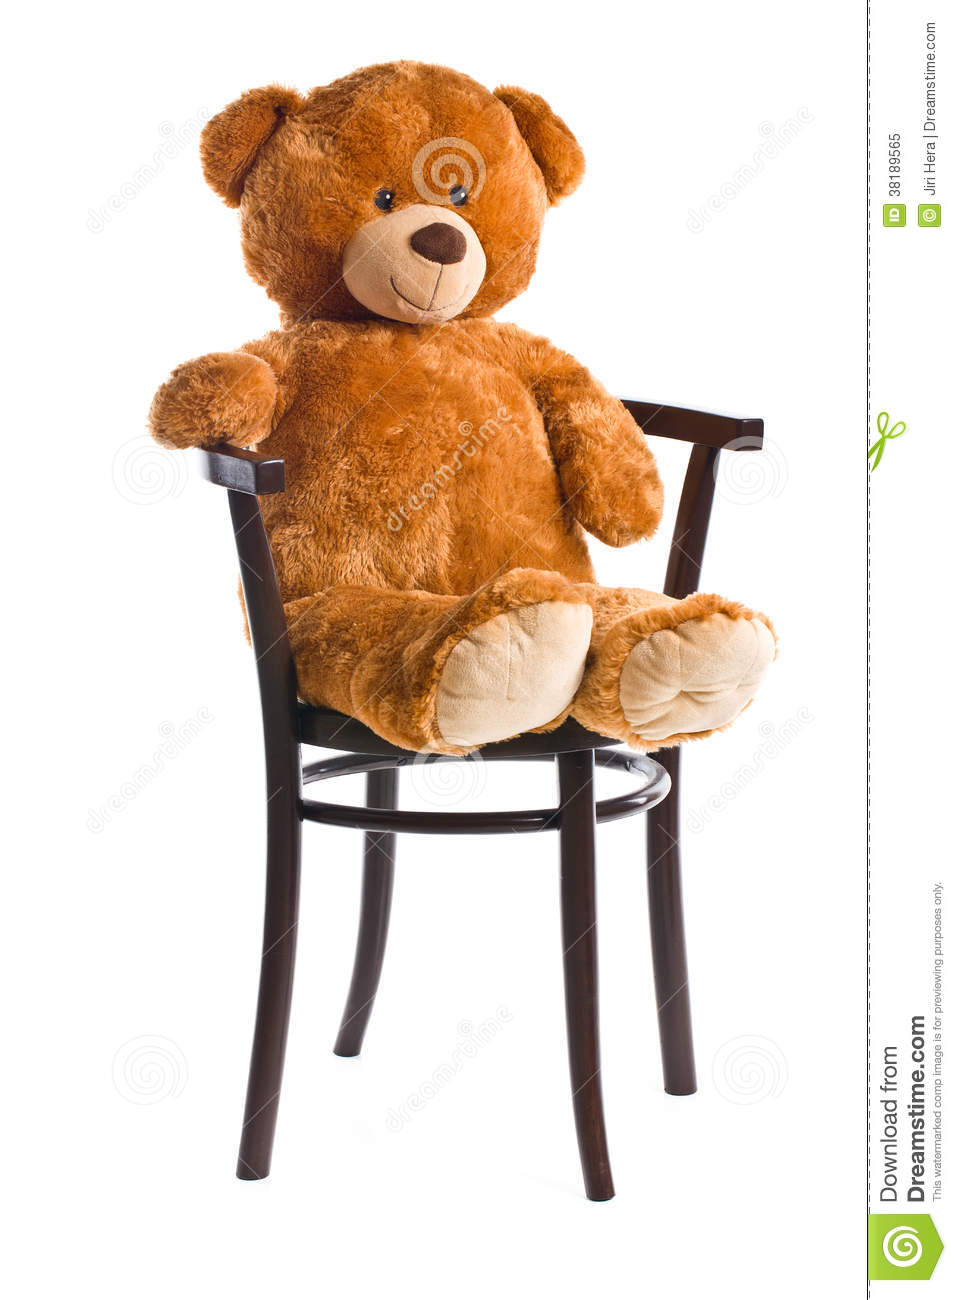 teddy bear sitting on a chair stock image image 38189565. Black Bedroom Furniture Sets. Home Design Ideas